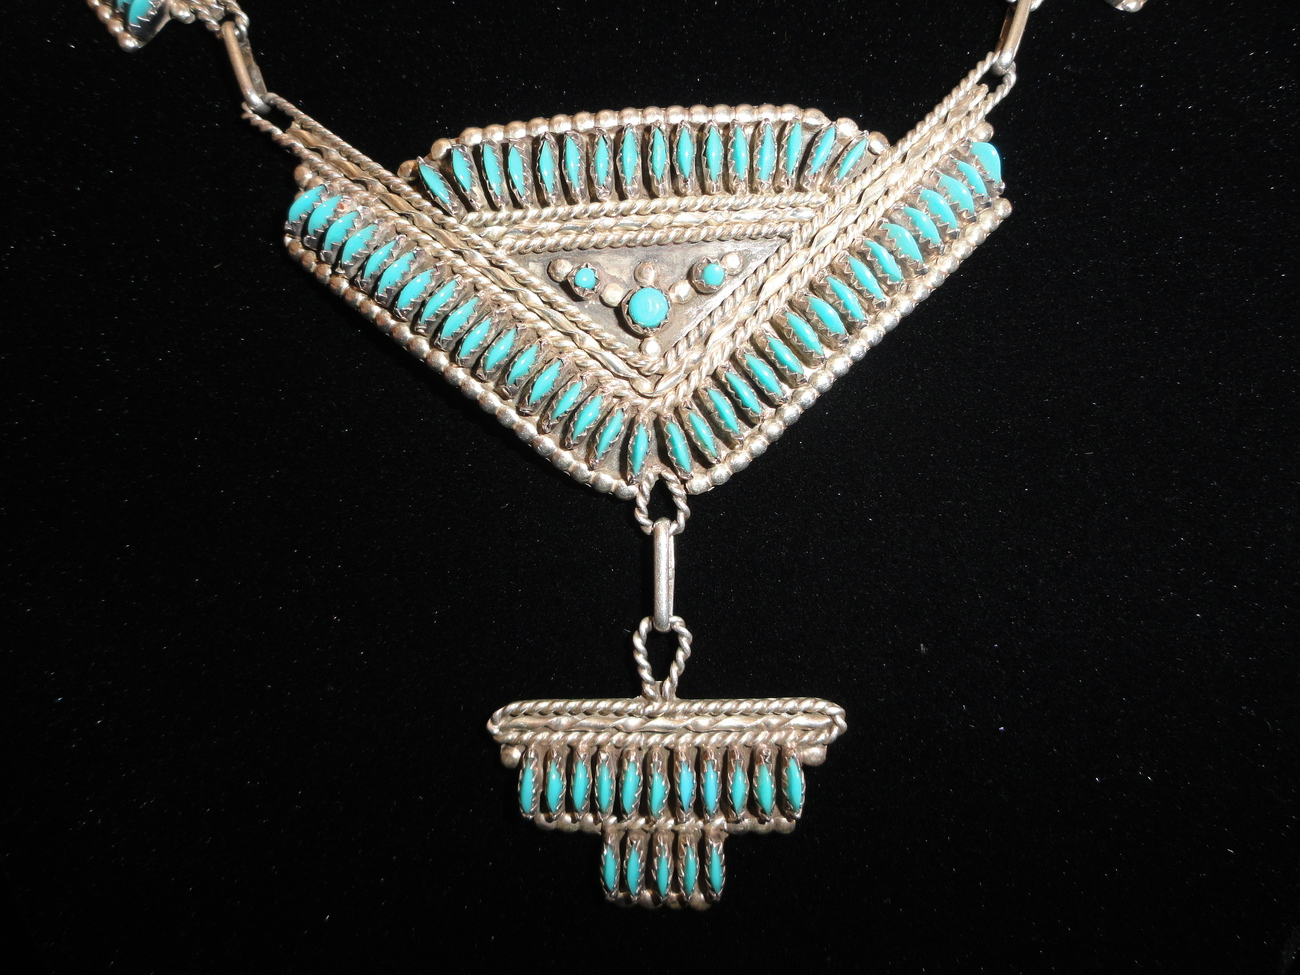 Nativeamericanzunisterlingneedlepointturquoisenecklace__2_